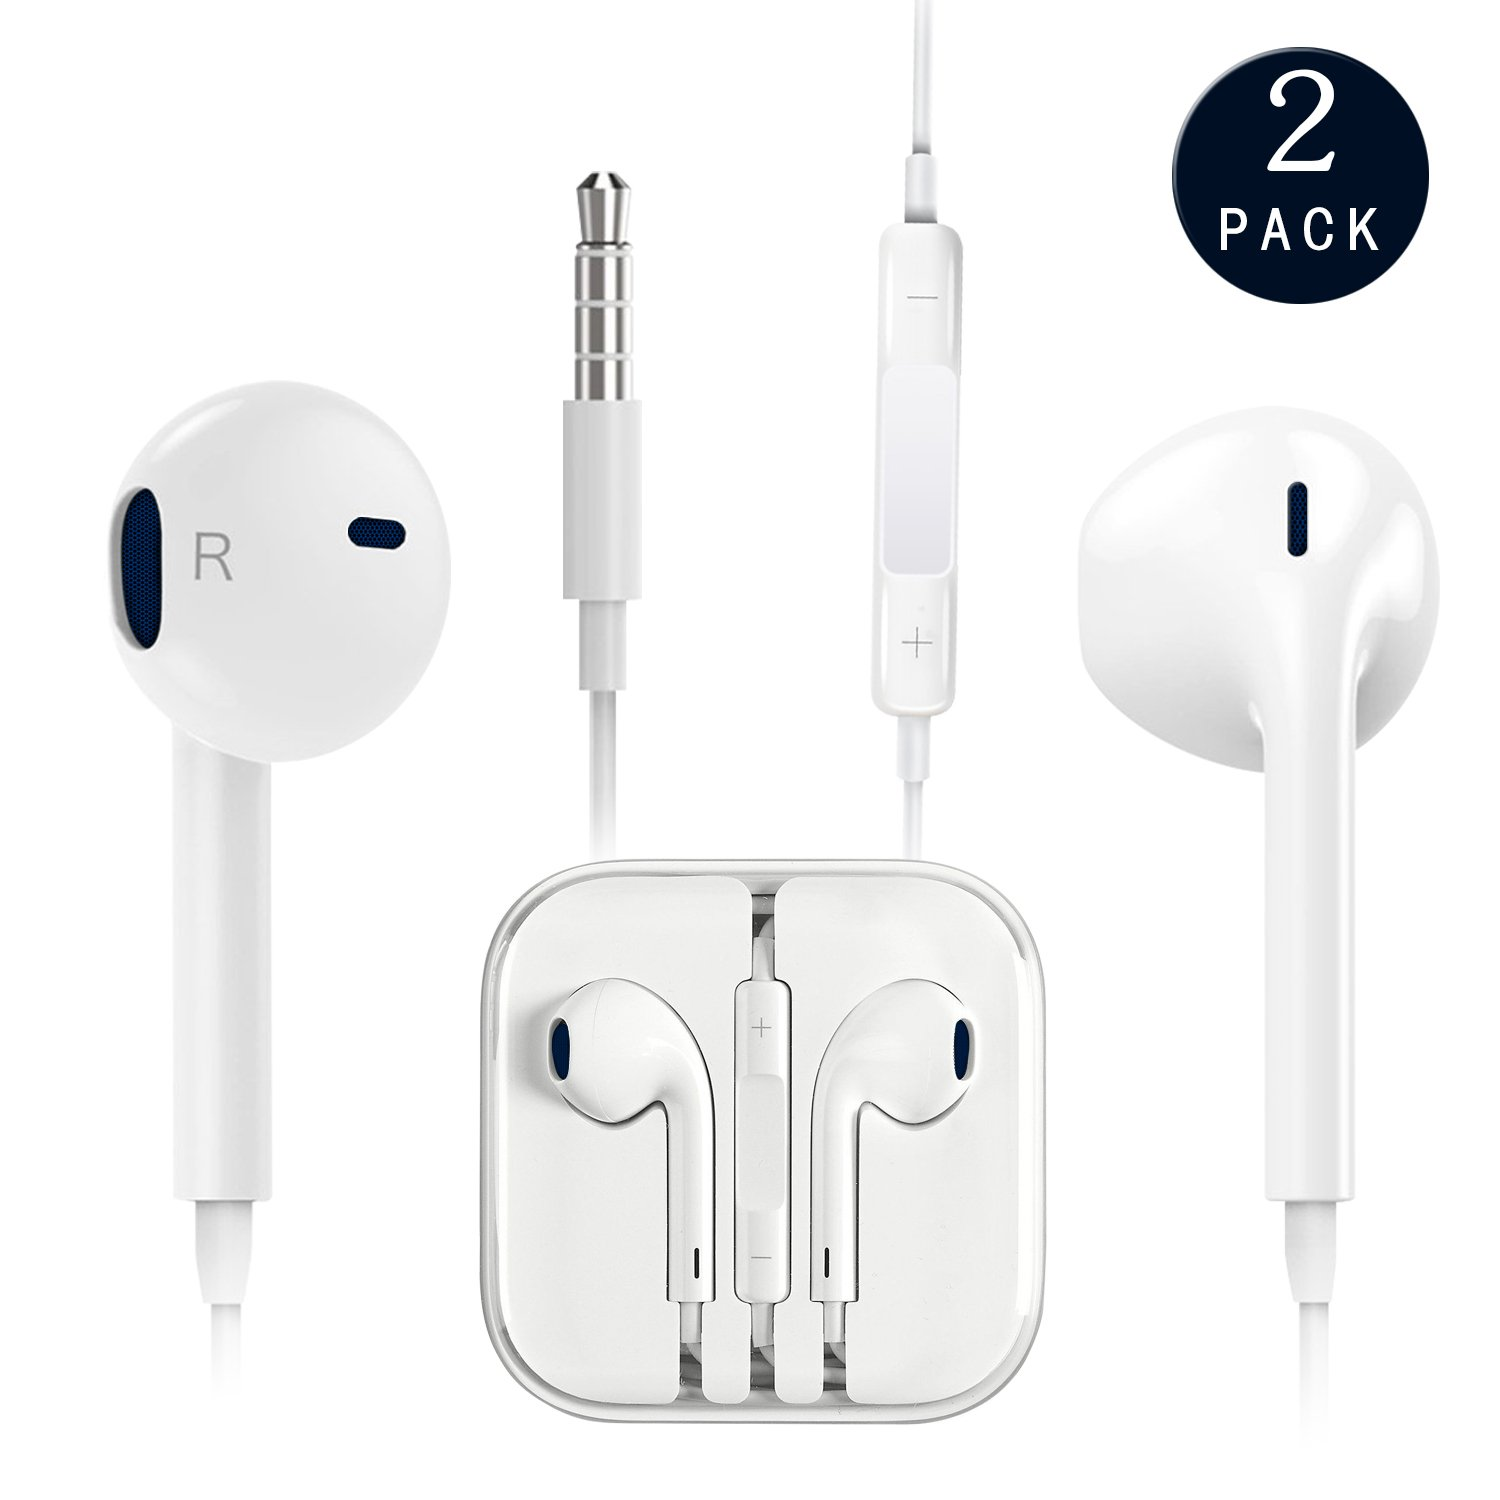 Cafetec - [2 Pack][White][Premium Earbuds][Stereo Headphones][Noise Isolating][Headset Made] - Earphones Microphone - (Model iPhone iPod iPad)